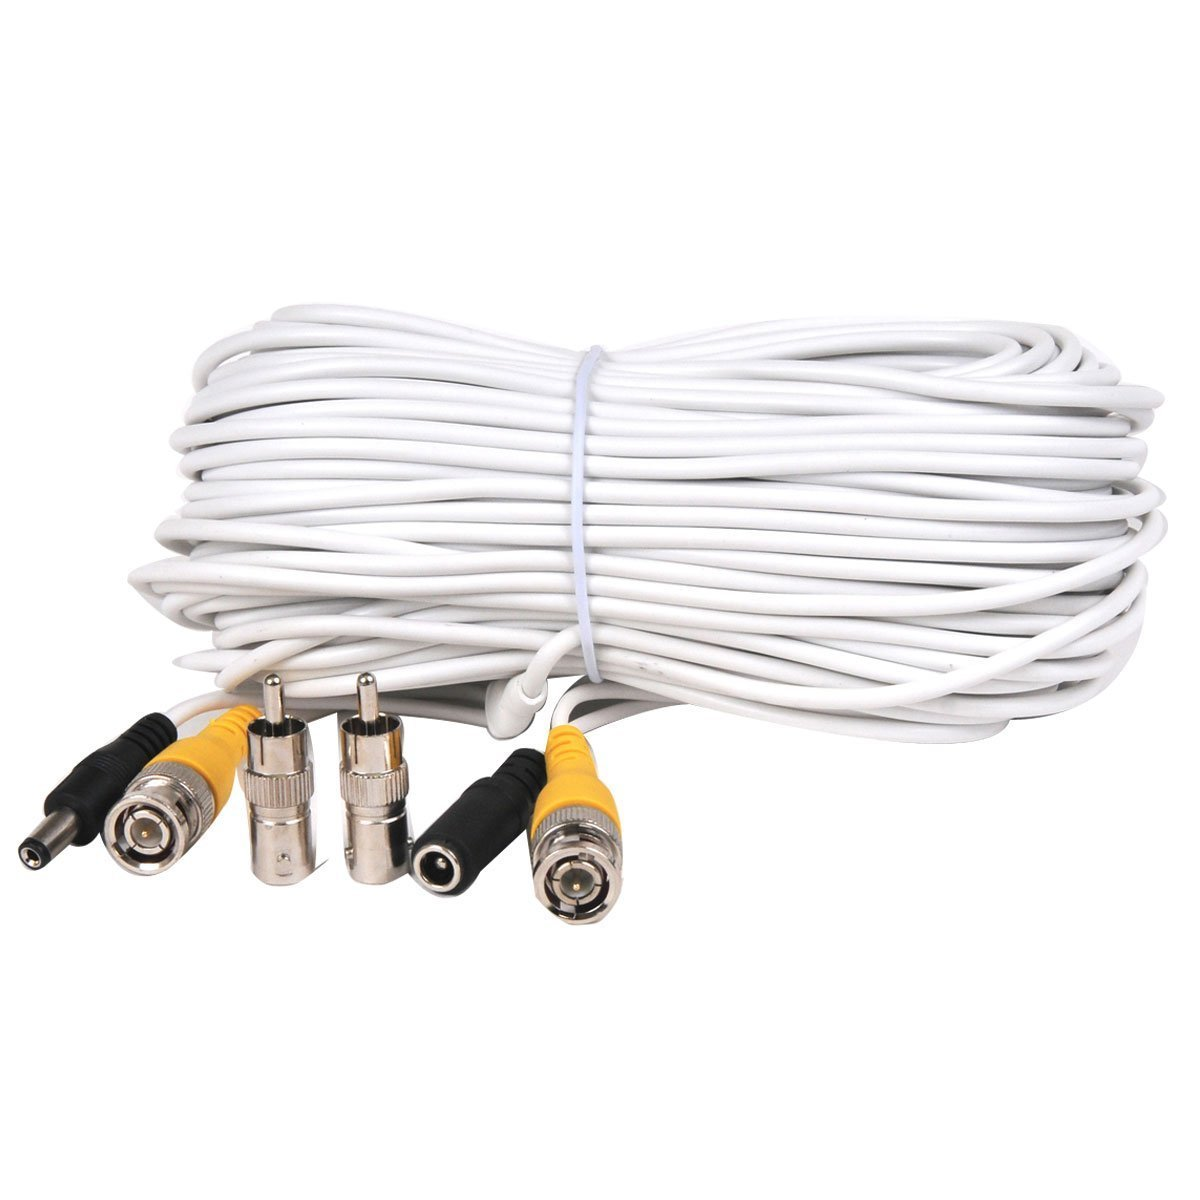 Amazon.com : VideoSecu 100ft Feet Video Power Cable BNC RCA Wire ...